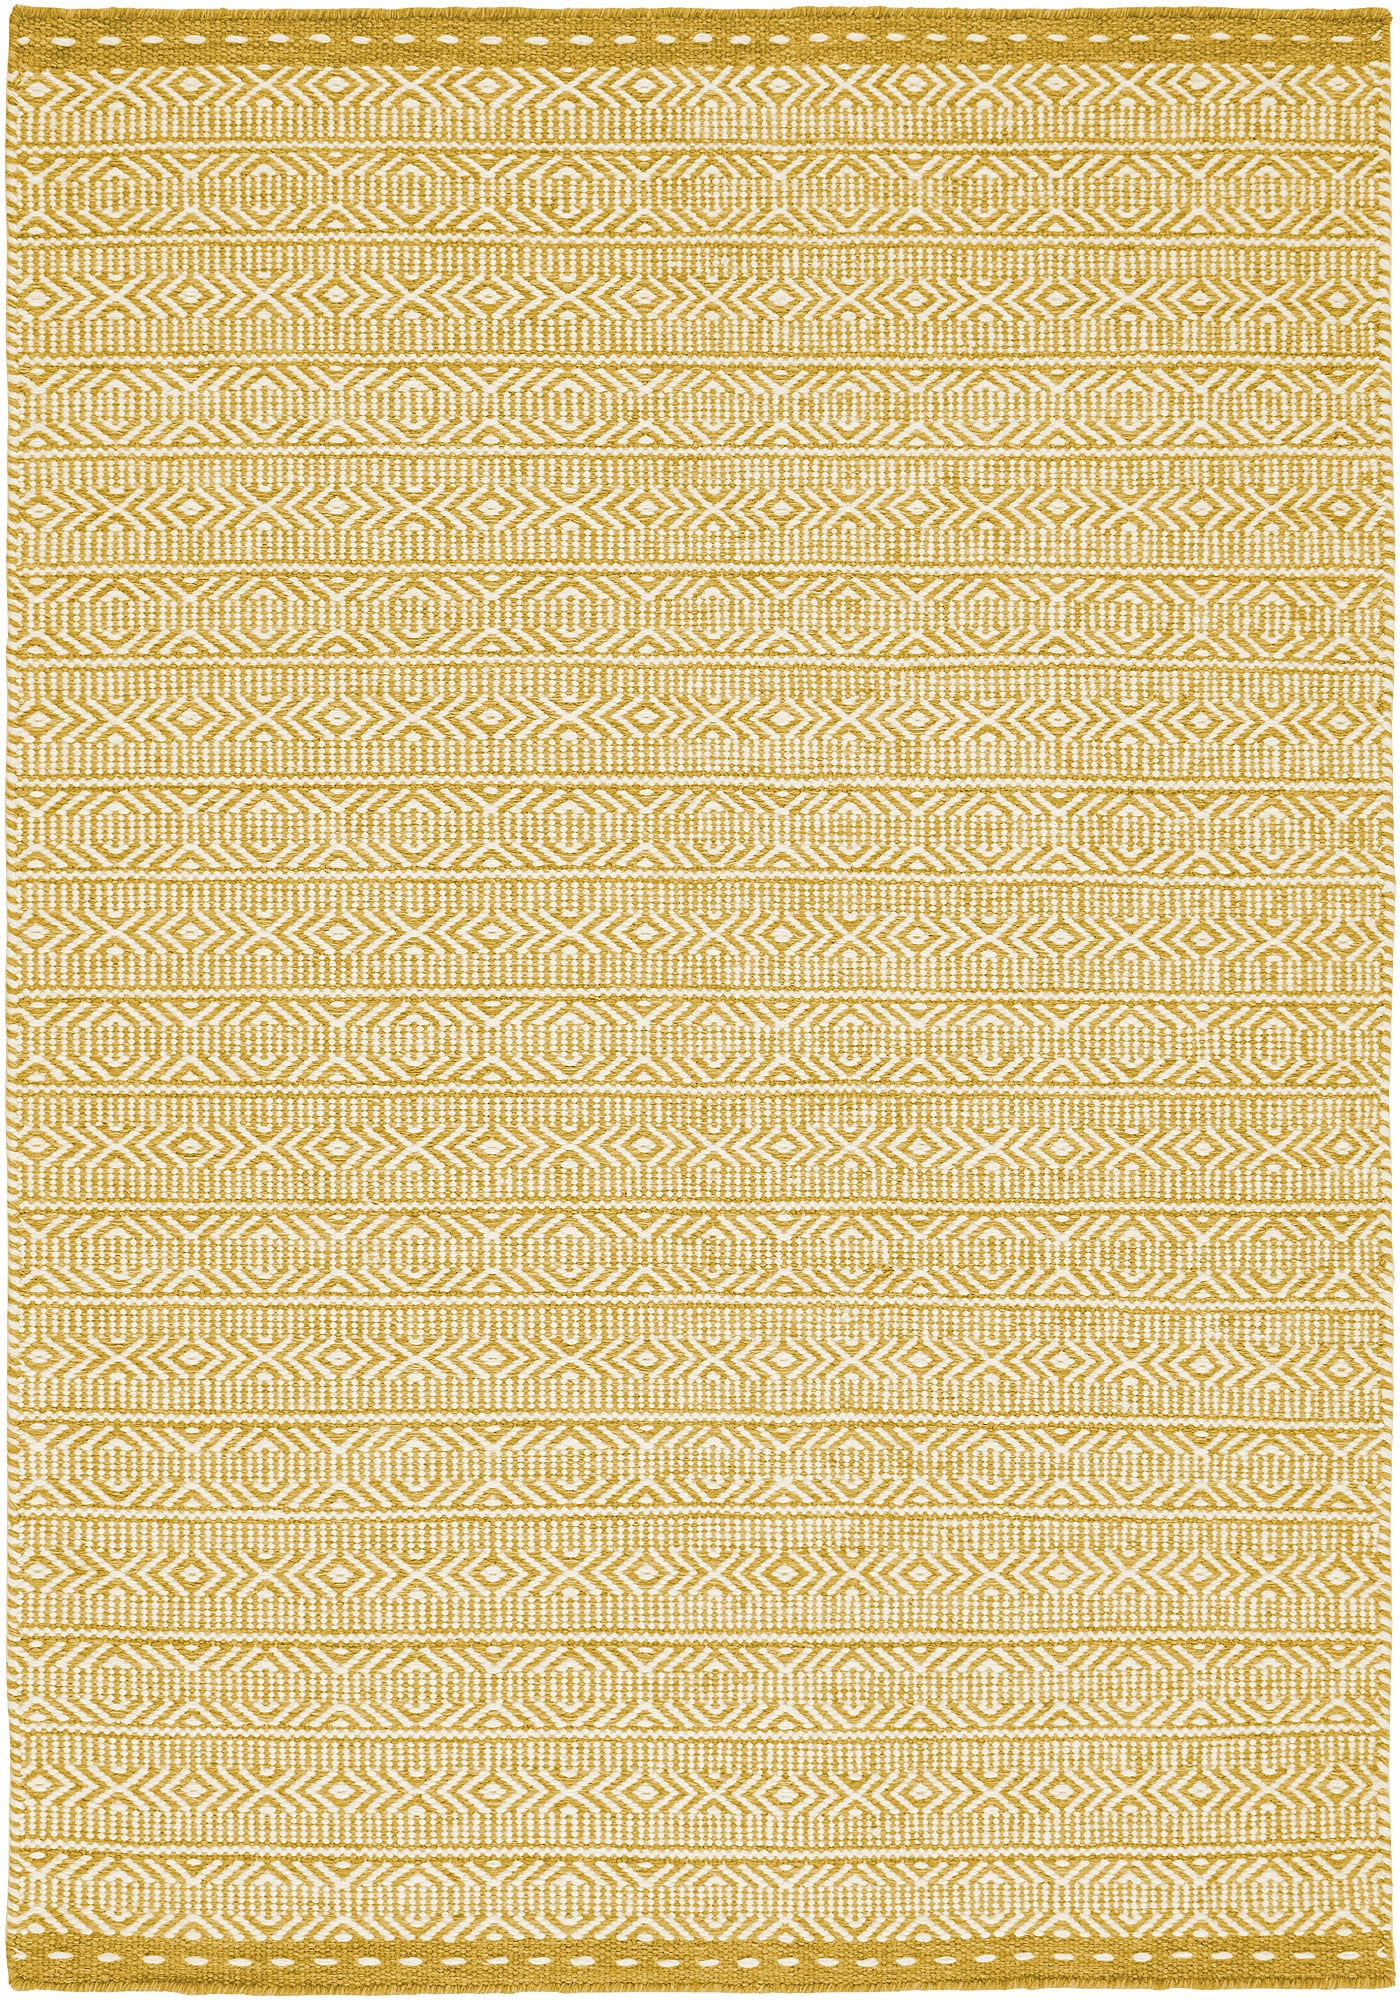 Knox Rug By Asiatc Carpets Colour Ochre Rugs Uk